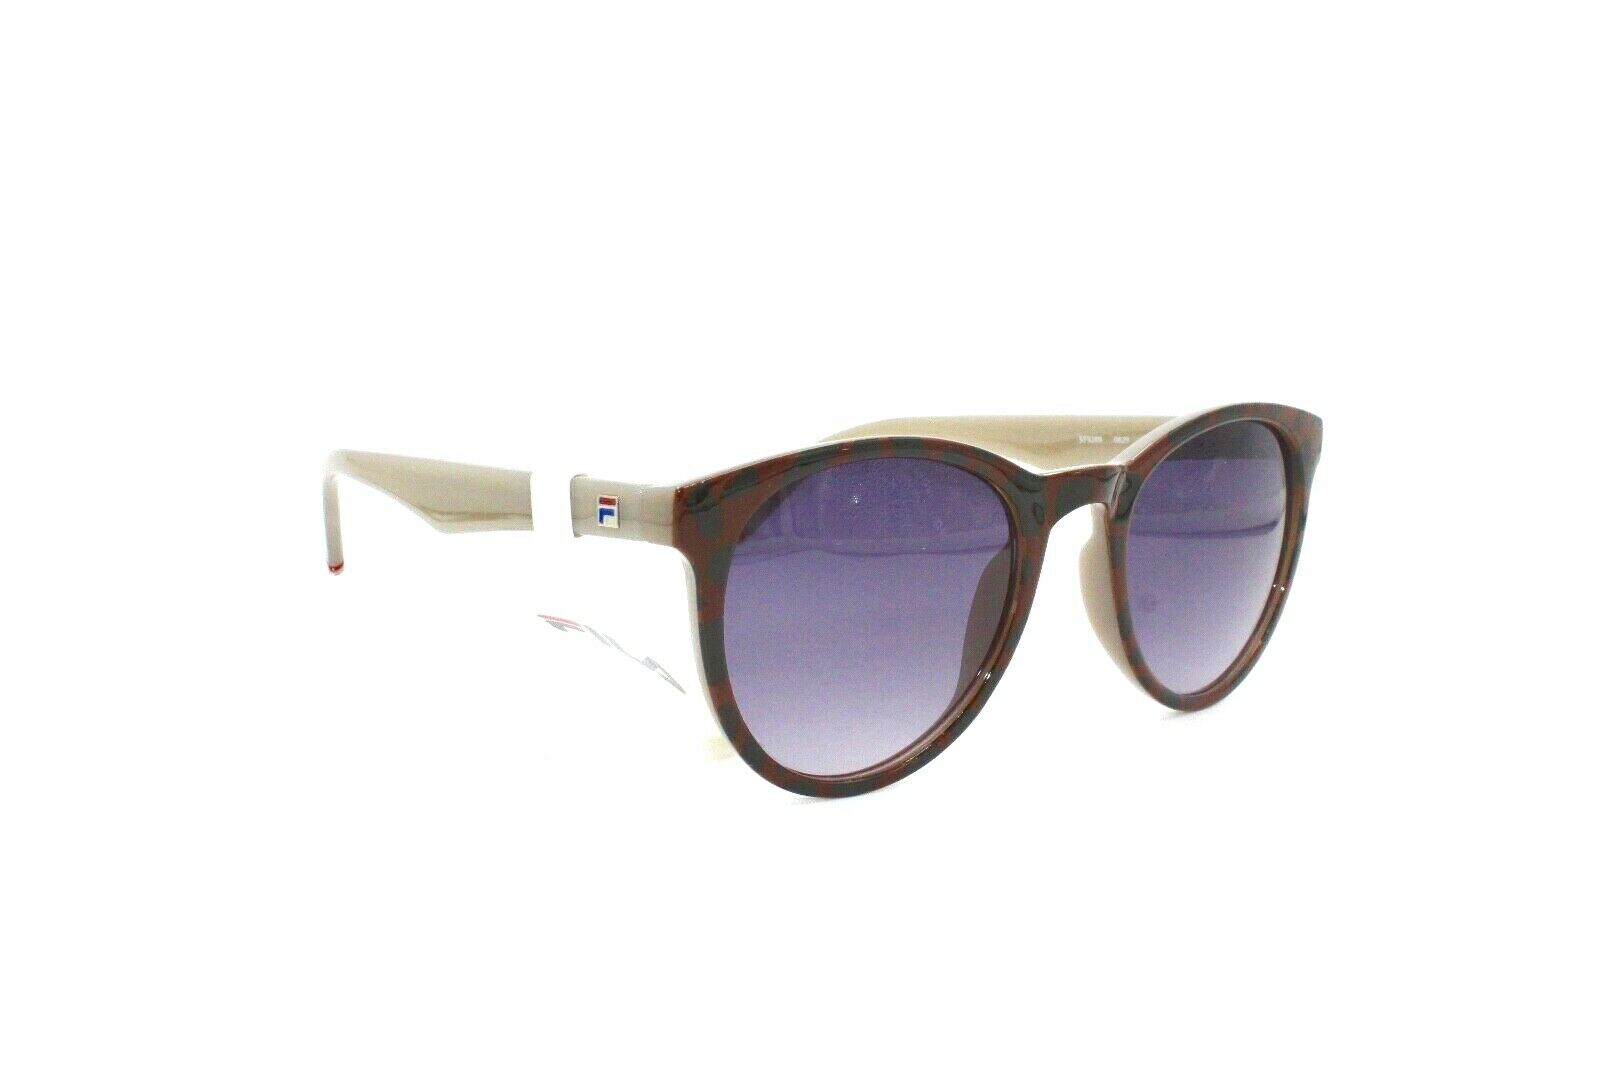 Fila Sunglasses Brown Pattern Purple SF9289 0829 53 22 140 - Mydesigneroptic